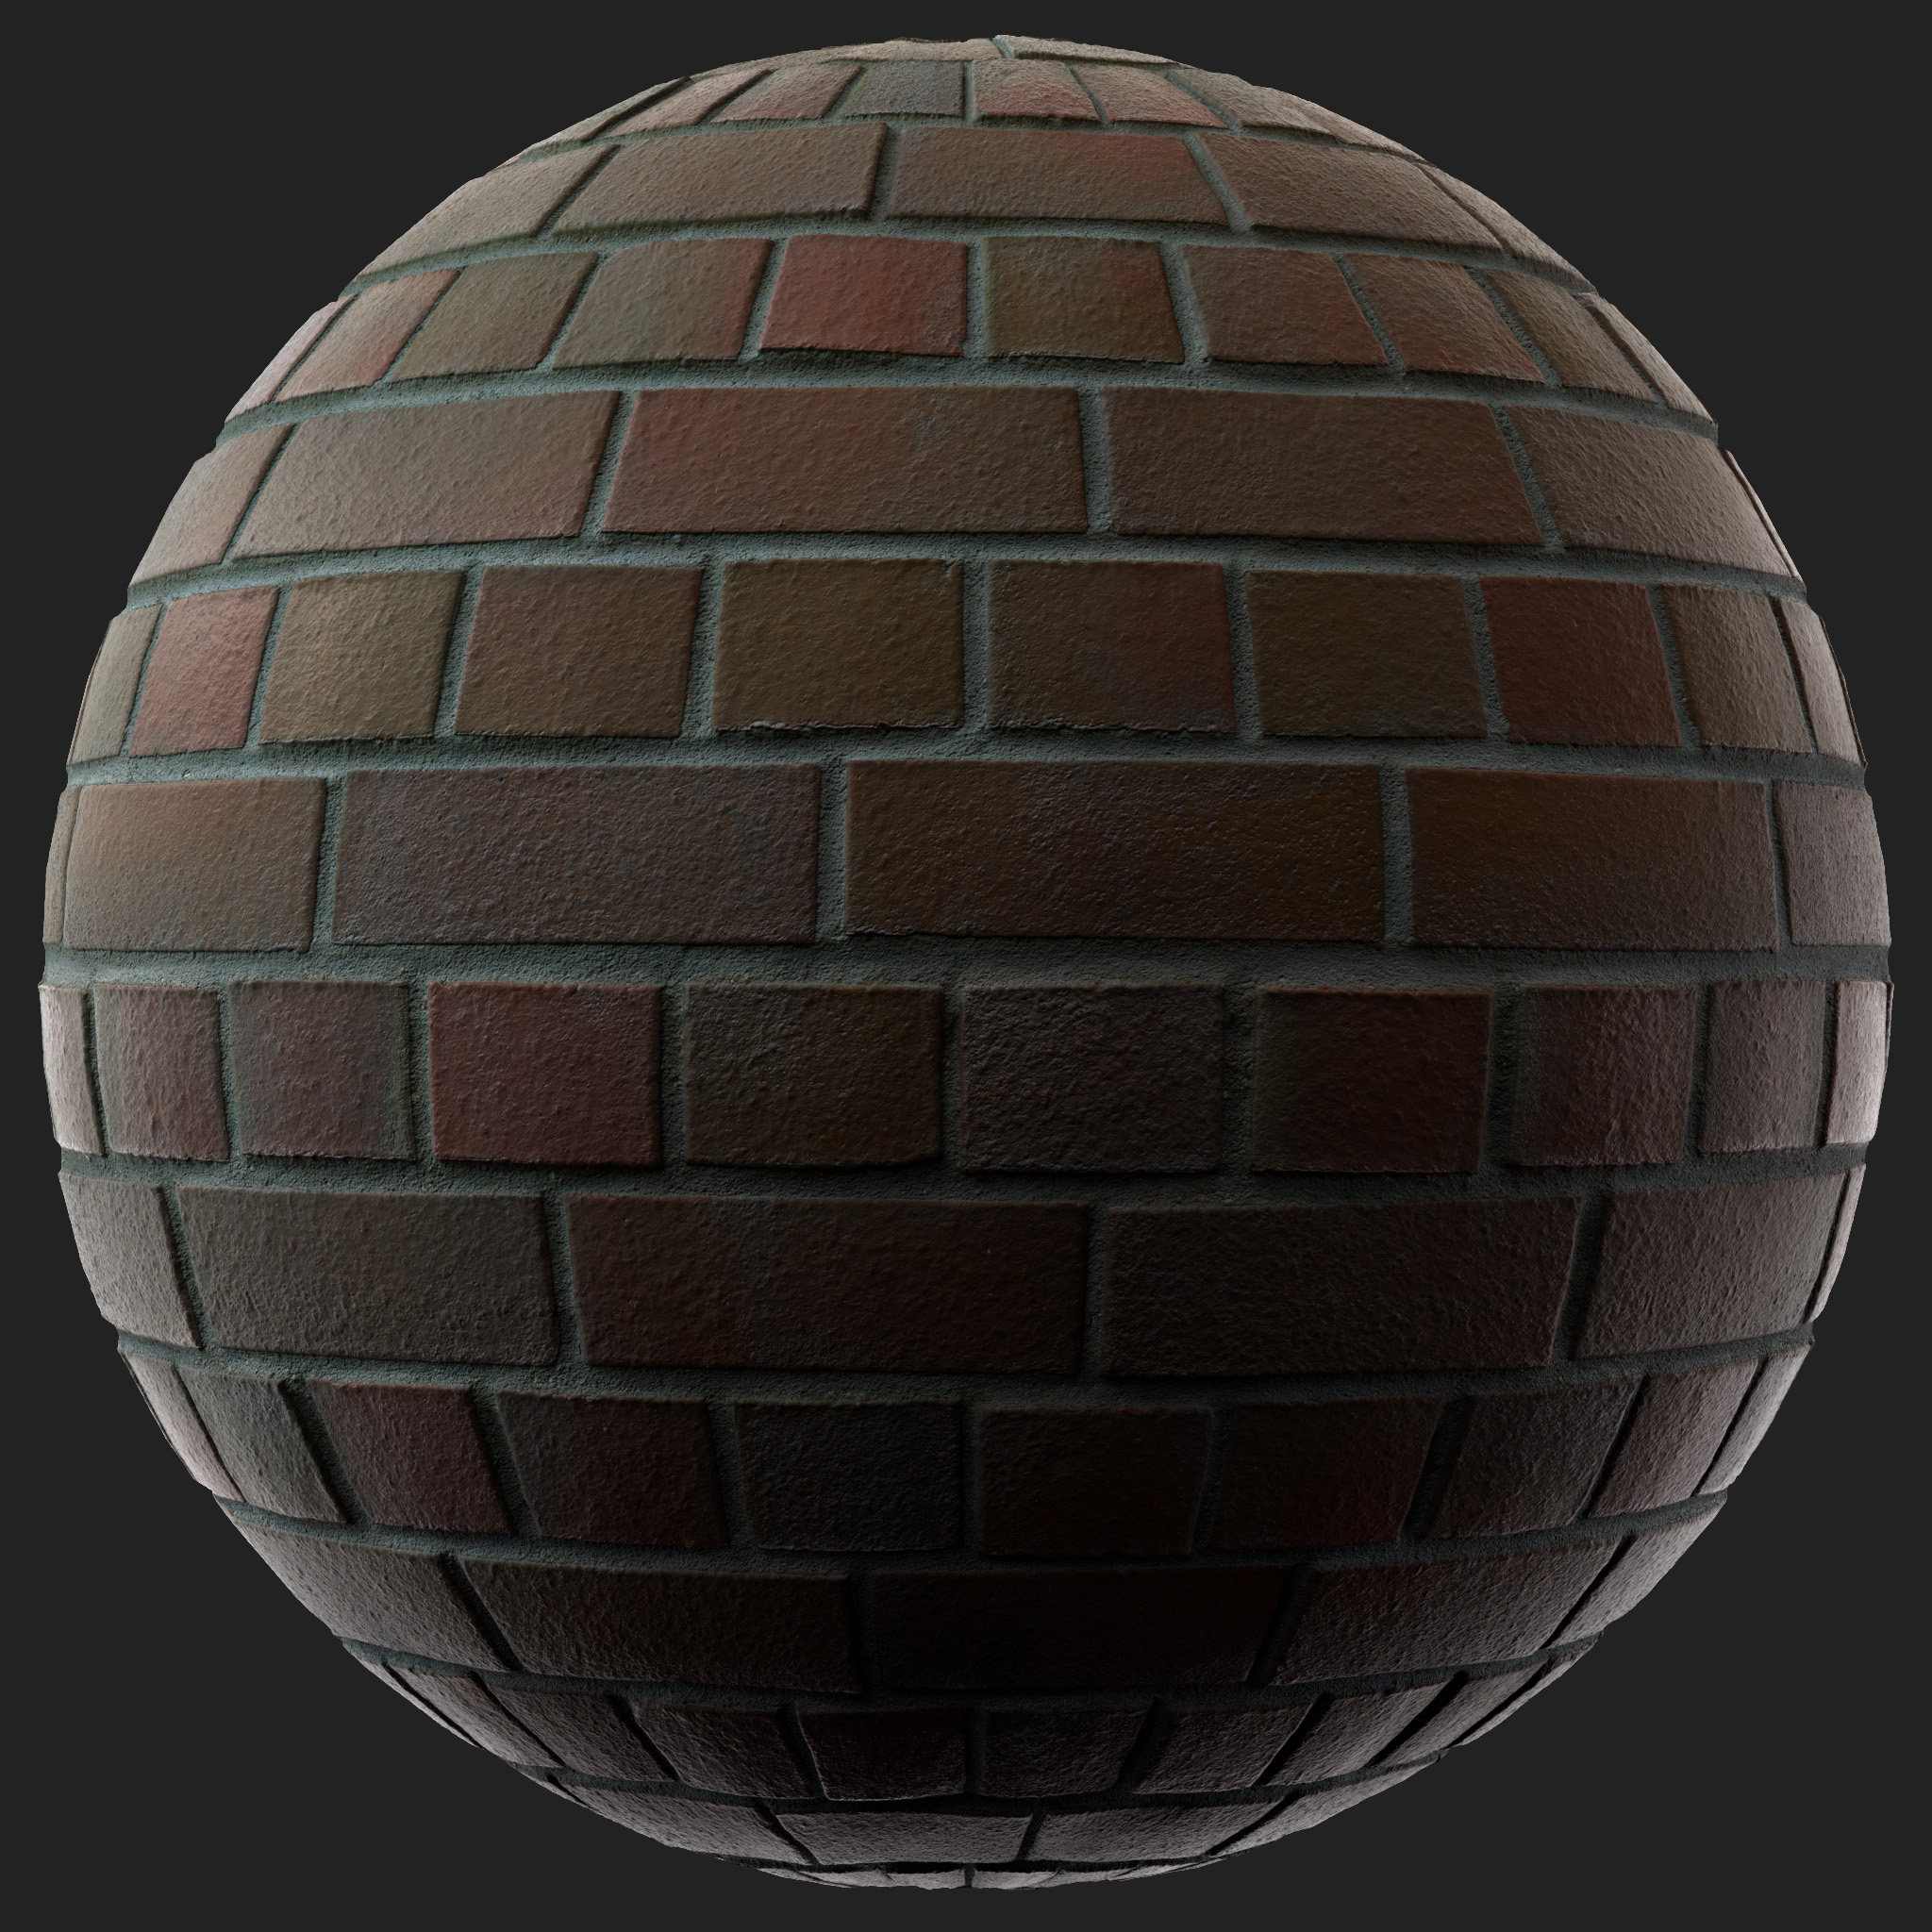 3D Scanned Seamless Red Brick Wall Material